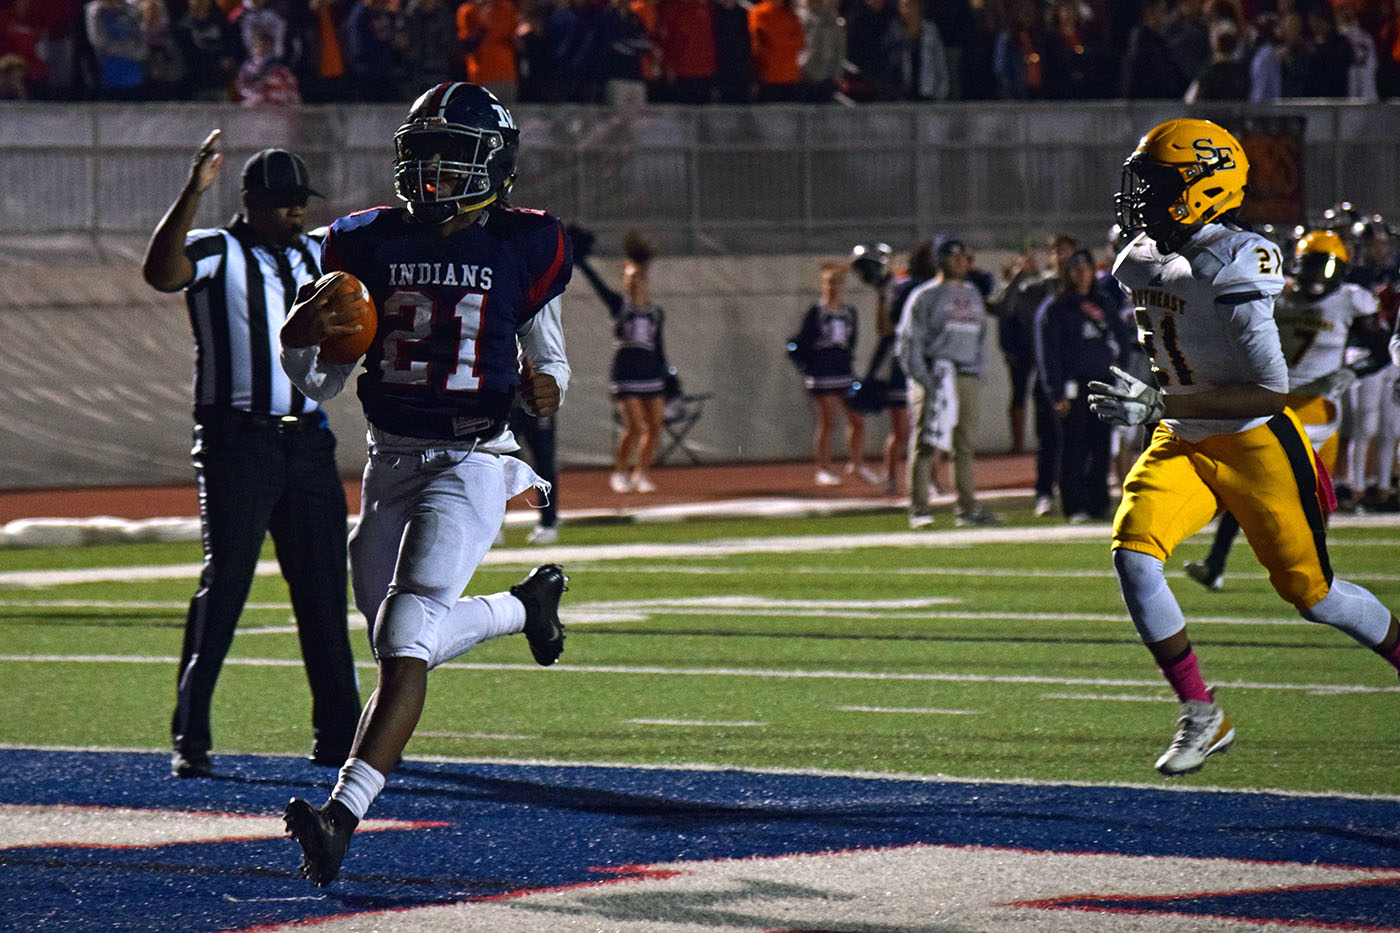 Senior Kevontae McDonald runs the balls into the endzone during the Oct. 26 Manhattan High School Varsity football game. The Indains defeated Wichita Southeast High School 73-20, adding another win to their current season.